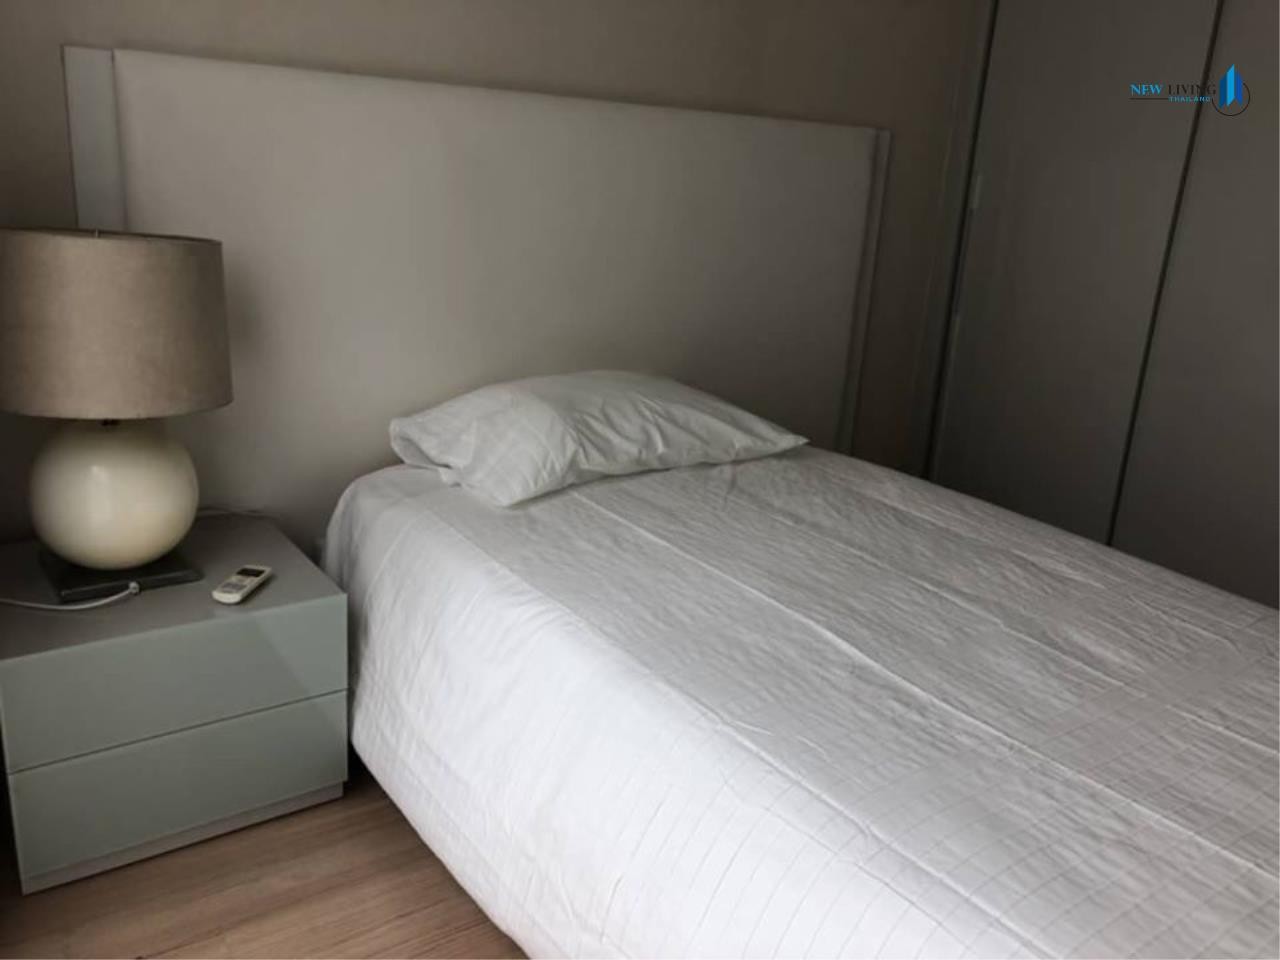 New Living Thailand Agency's For rent, The Address Pathumwan, near Ratchathewi BTS, 2 bedrooms, 60 sq.m., east, fully furnished 6